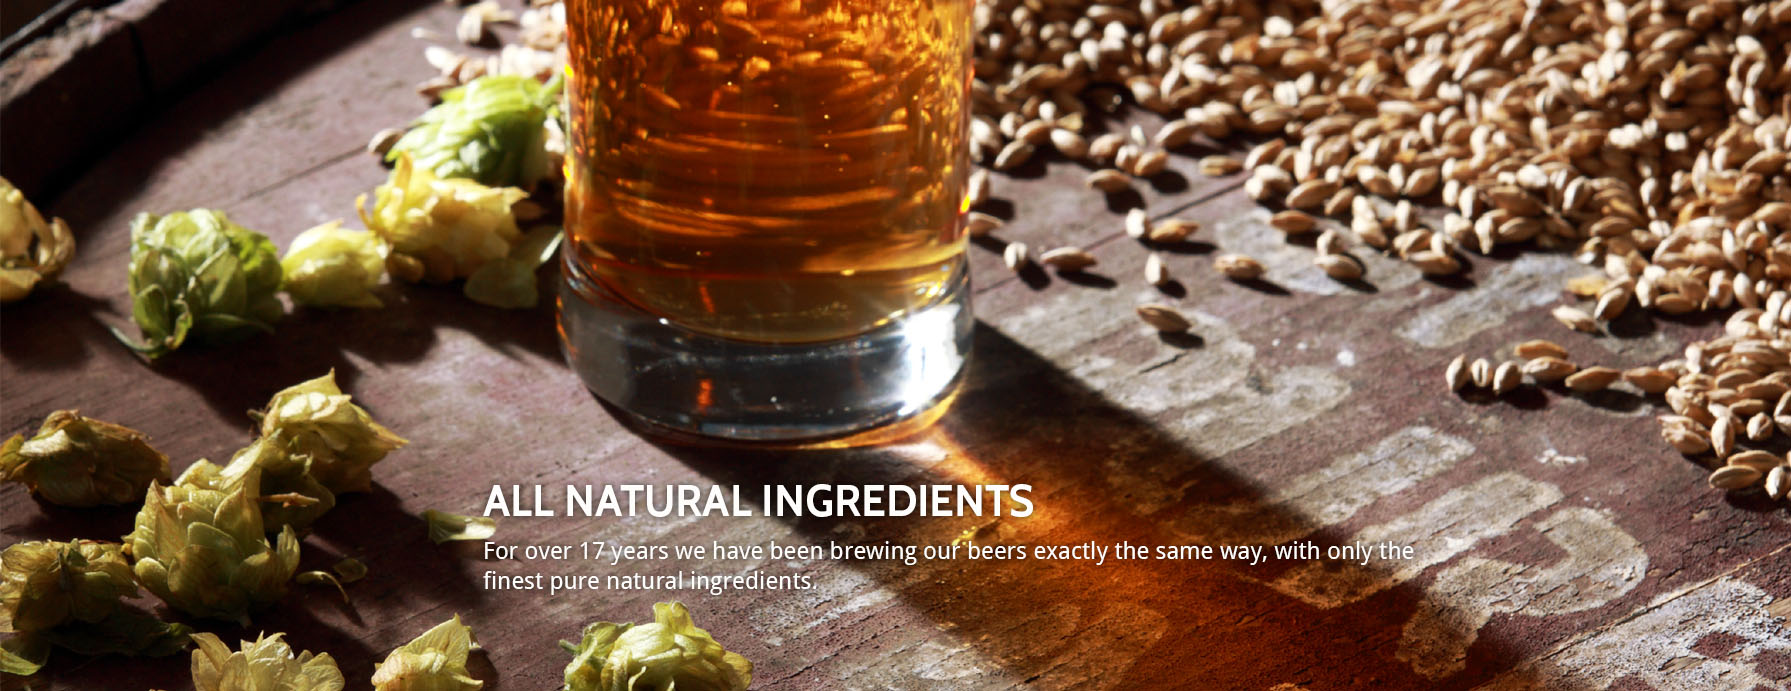 Home-Page-All-Natural-Ingredients-2